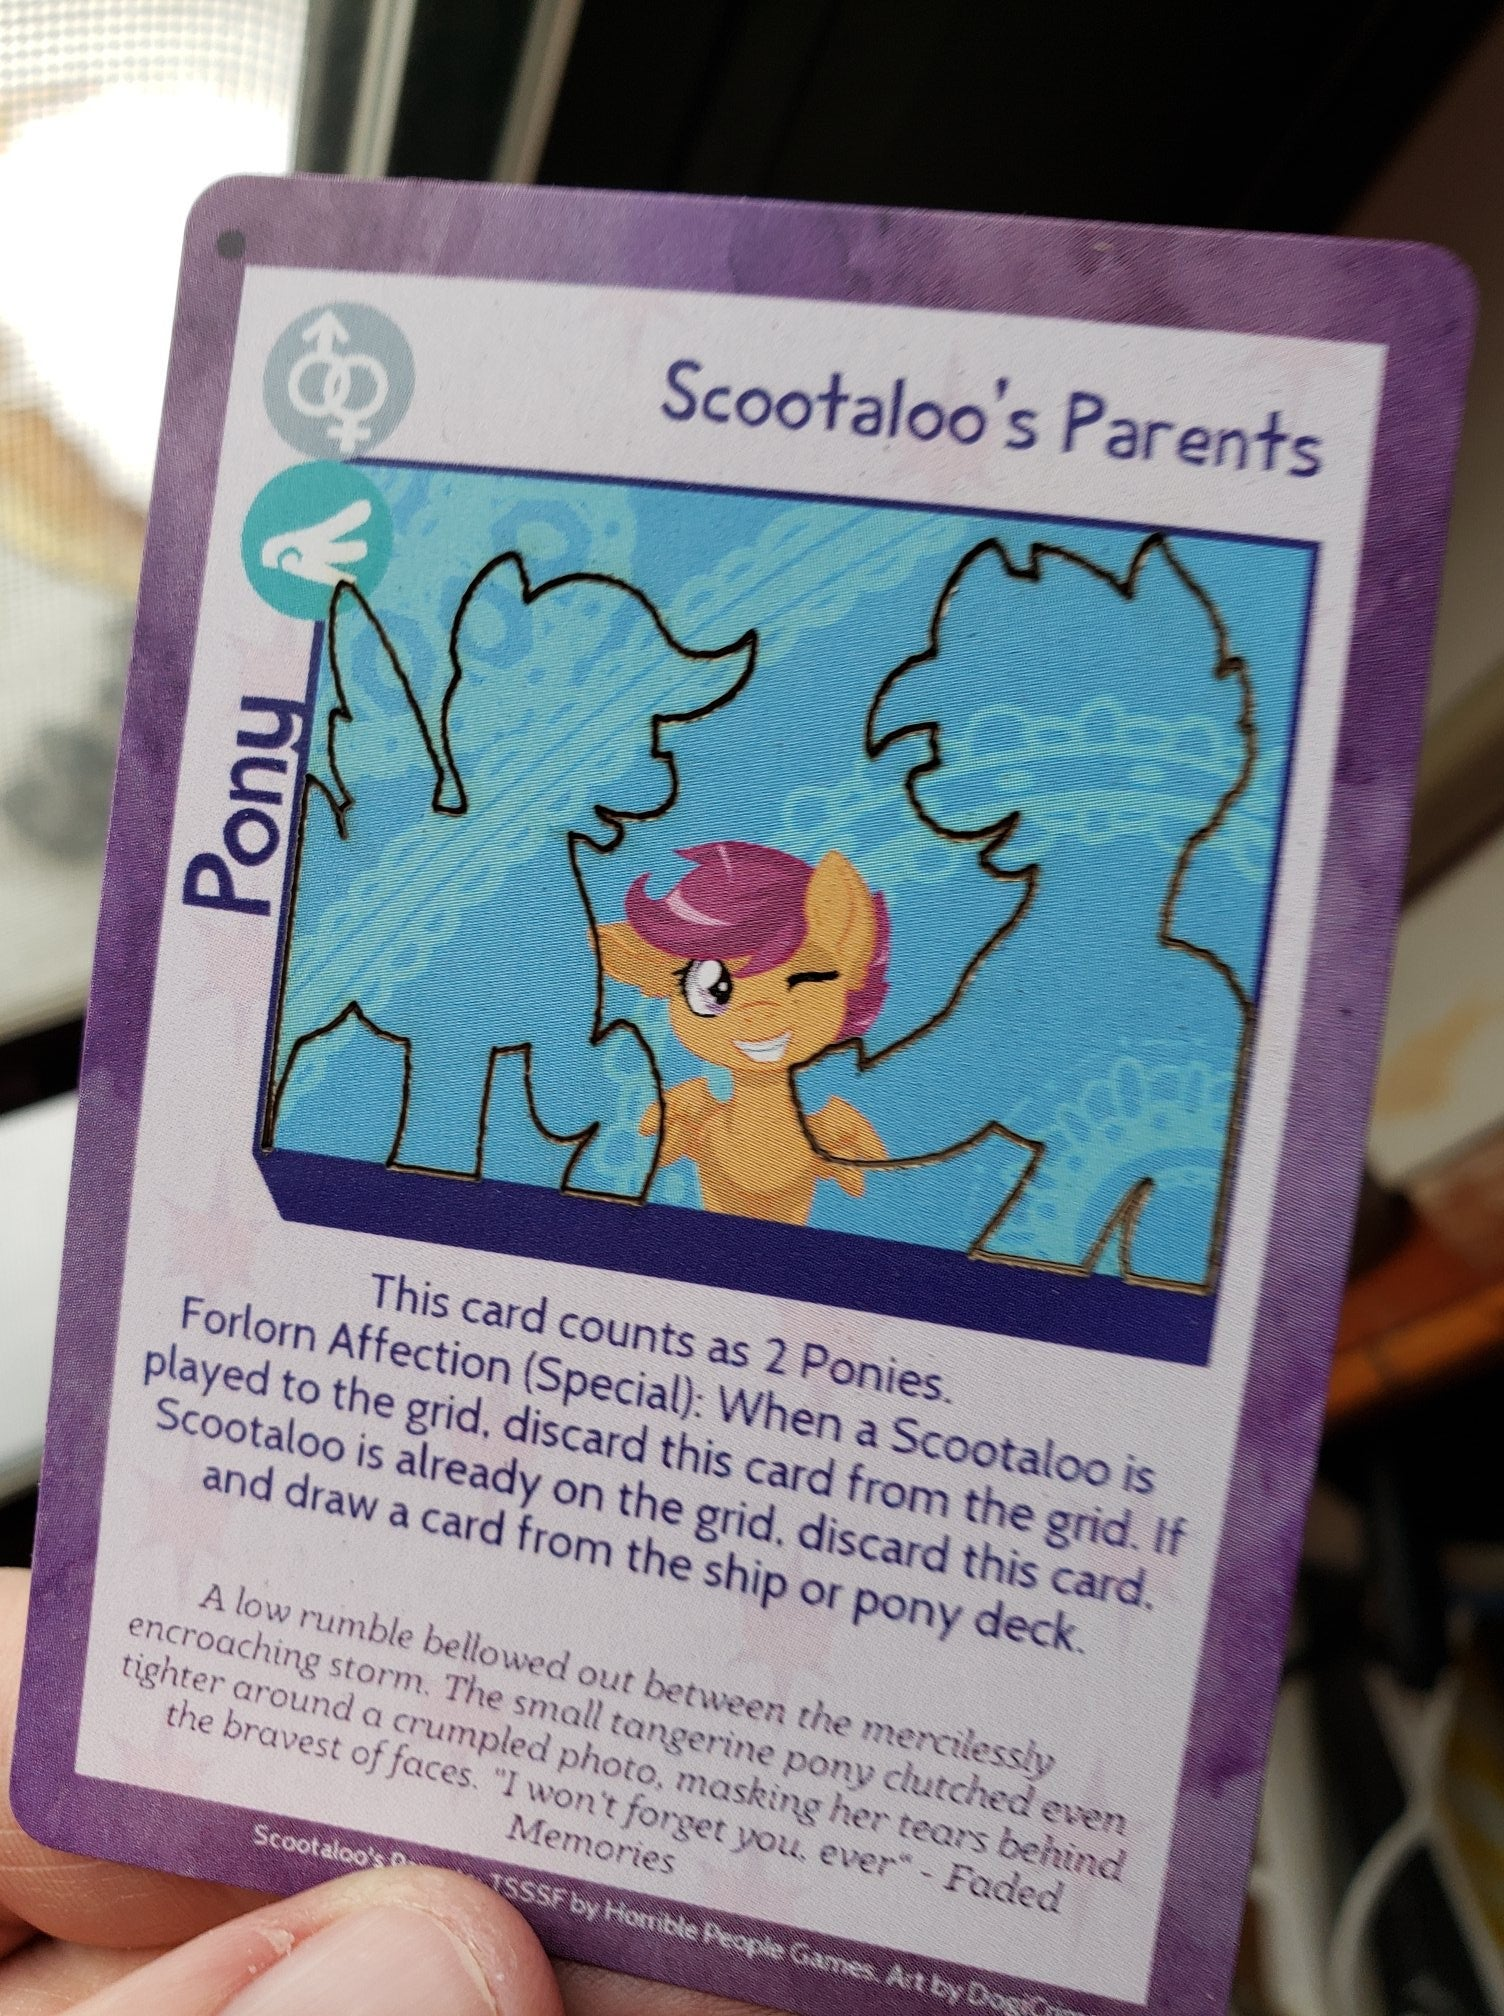 Scootaloo S Parents Sky Railroad I think scootaloo's parents are 2 ponies we don't know yet, maybe because they don't live in ponyville, or because the writers forgot about them. scootaloo s parents